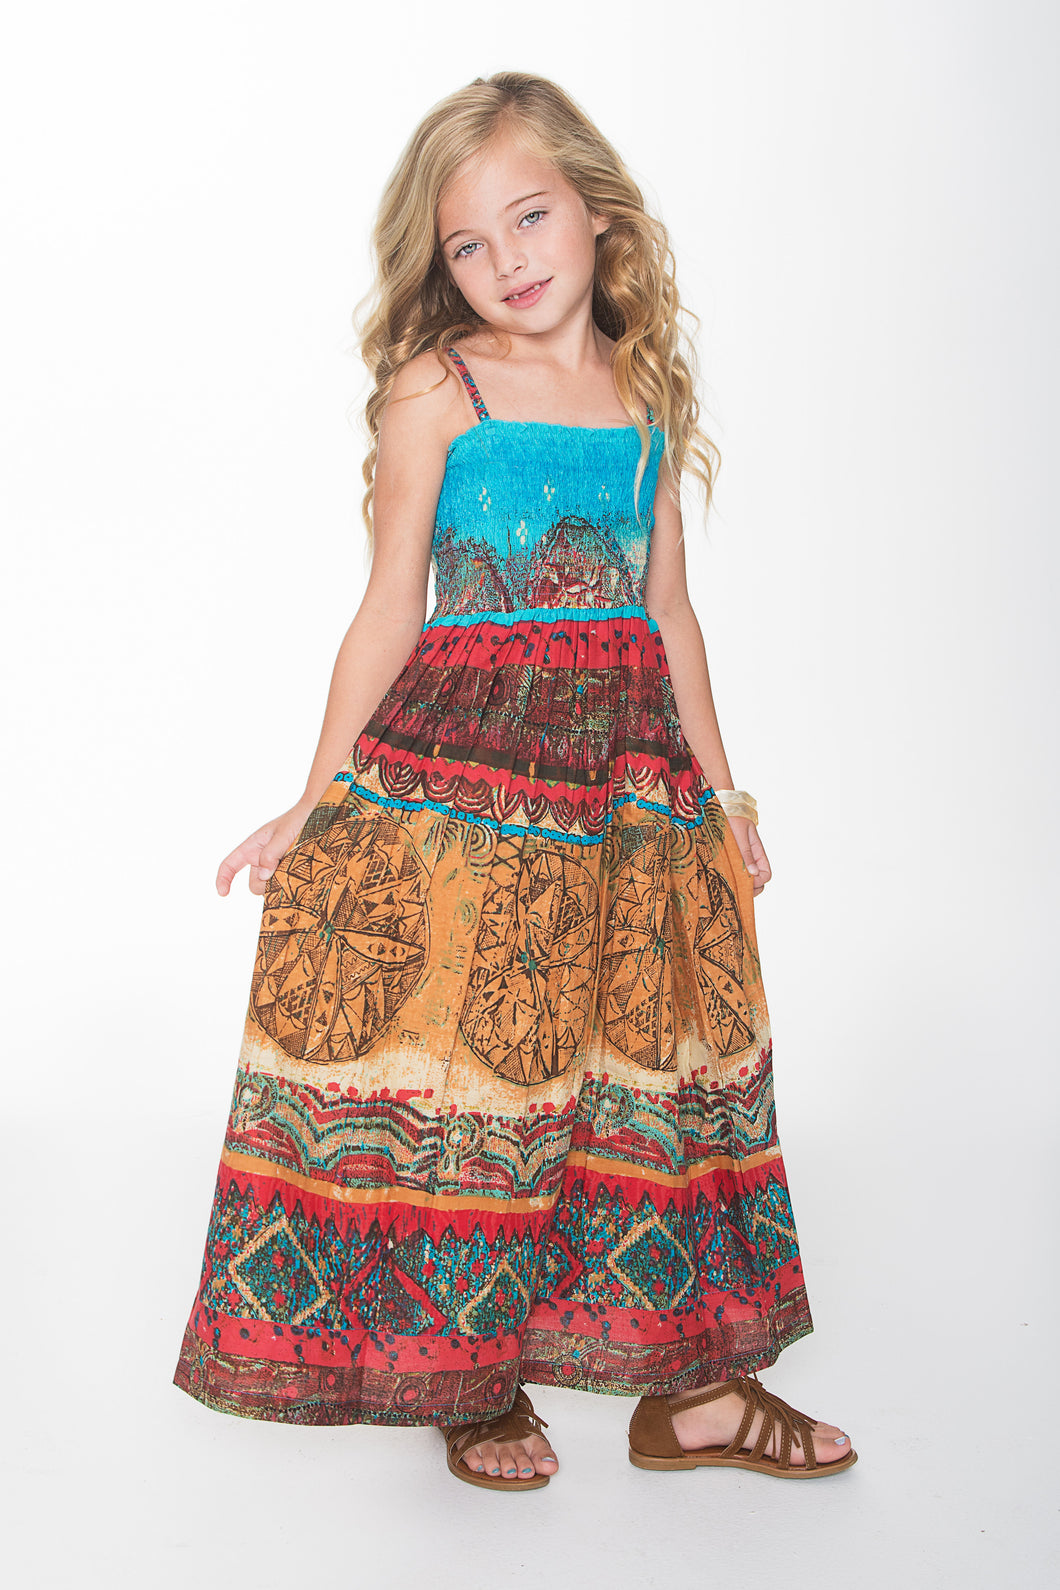 Blue Red and Orange Maxi Dress - Kids Wholesale Boutique Clothing, Dress - Girls Dresses, Yo Baby Wholesale - Yo Baby